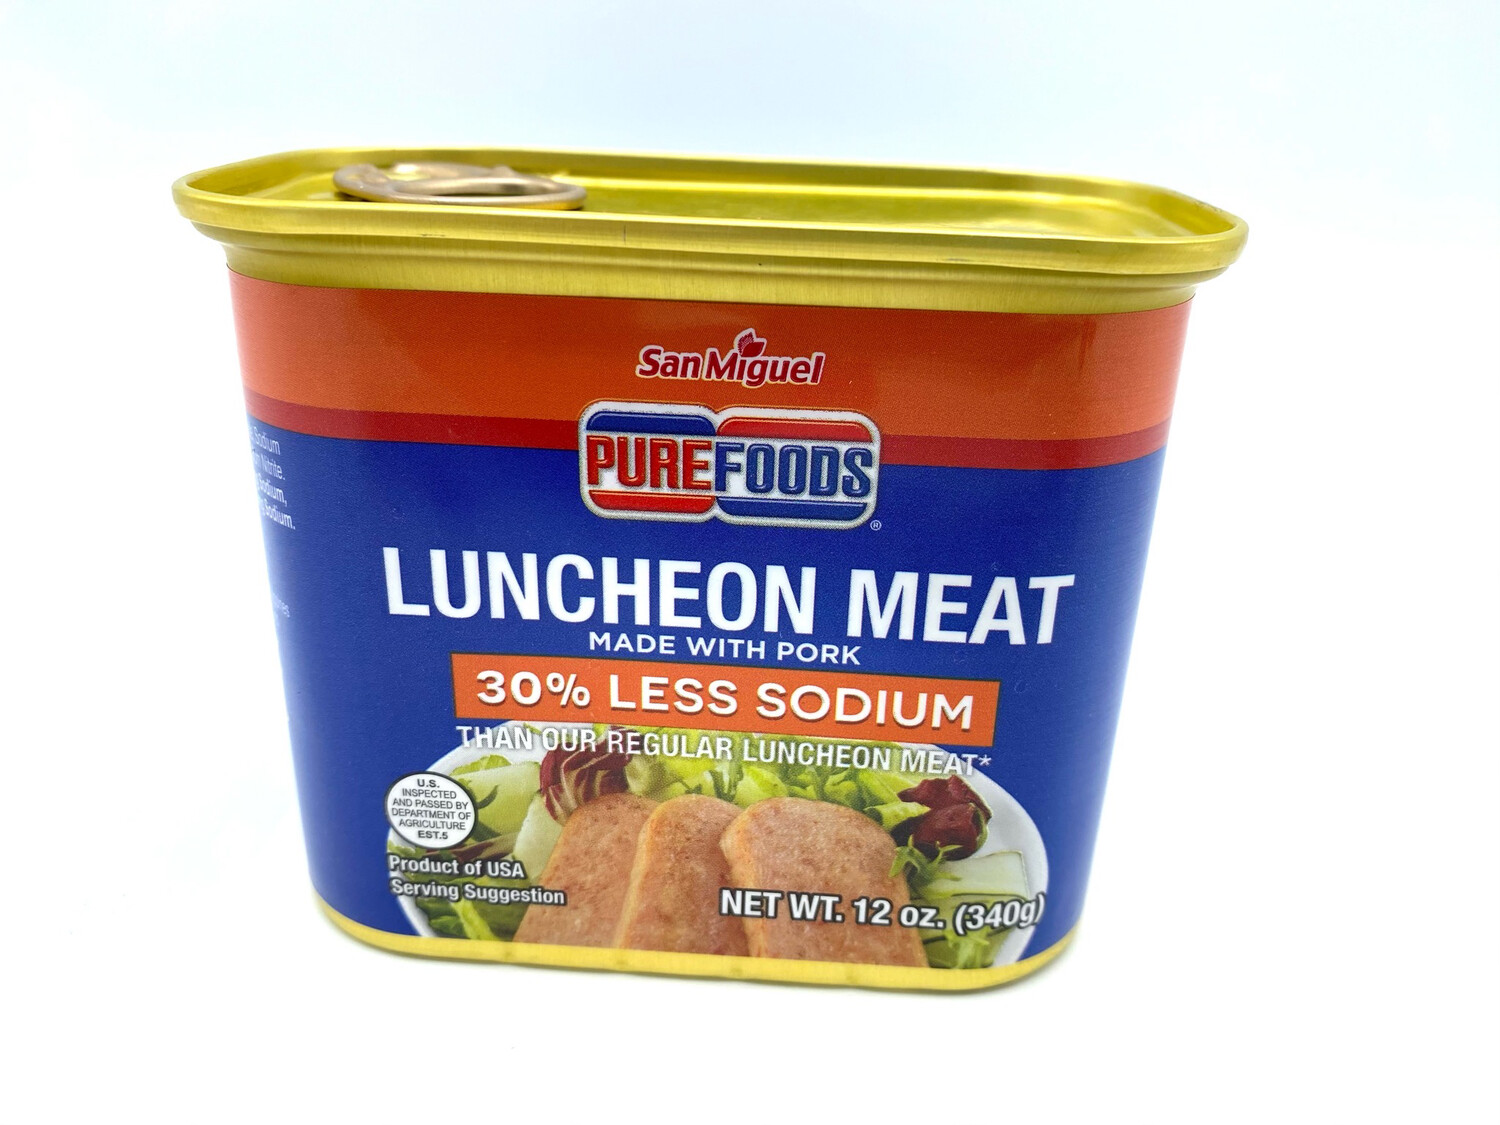 Purefoods Luncheon Meat 12oz